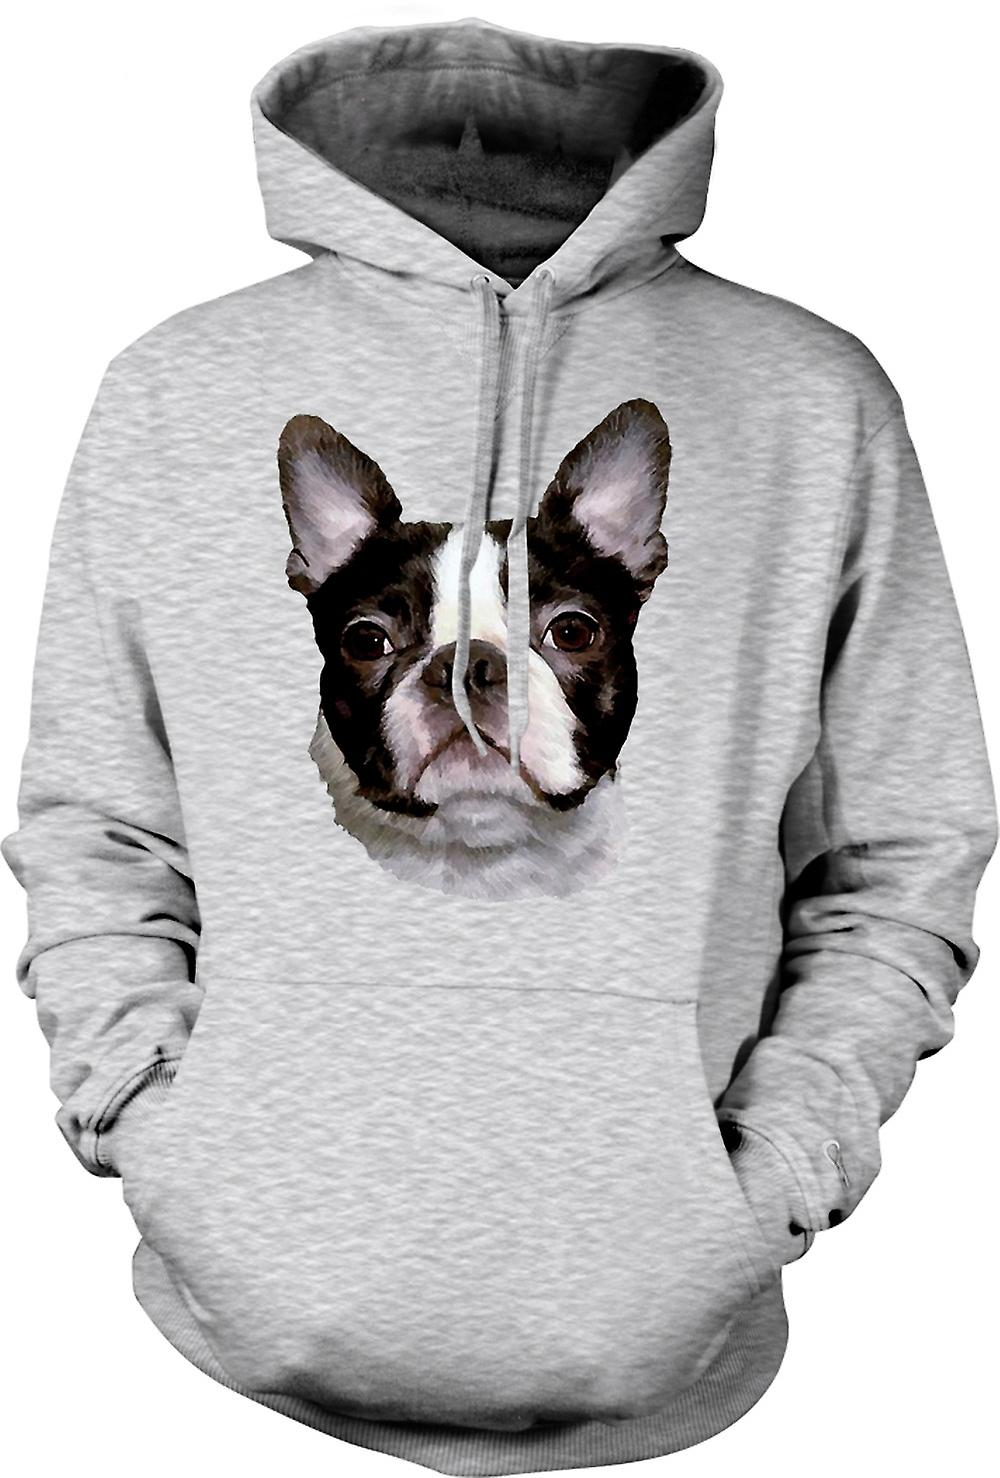 Mens Hoodie - Boston Terrier Pet - Dog